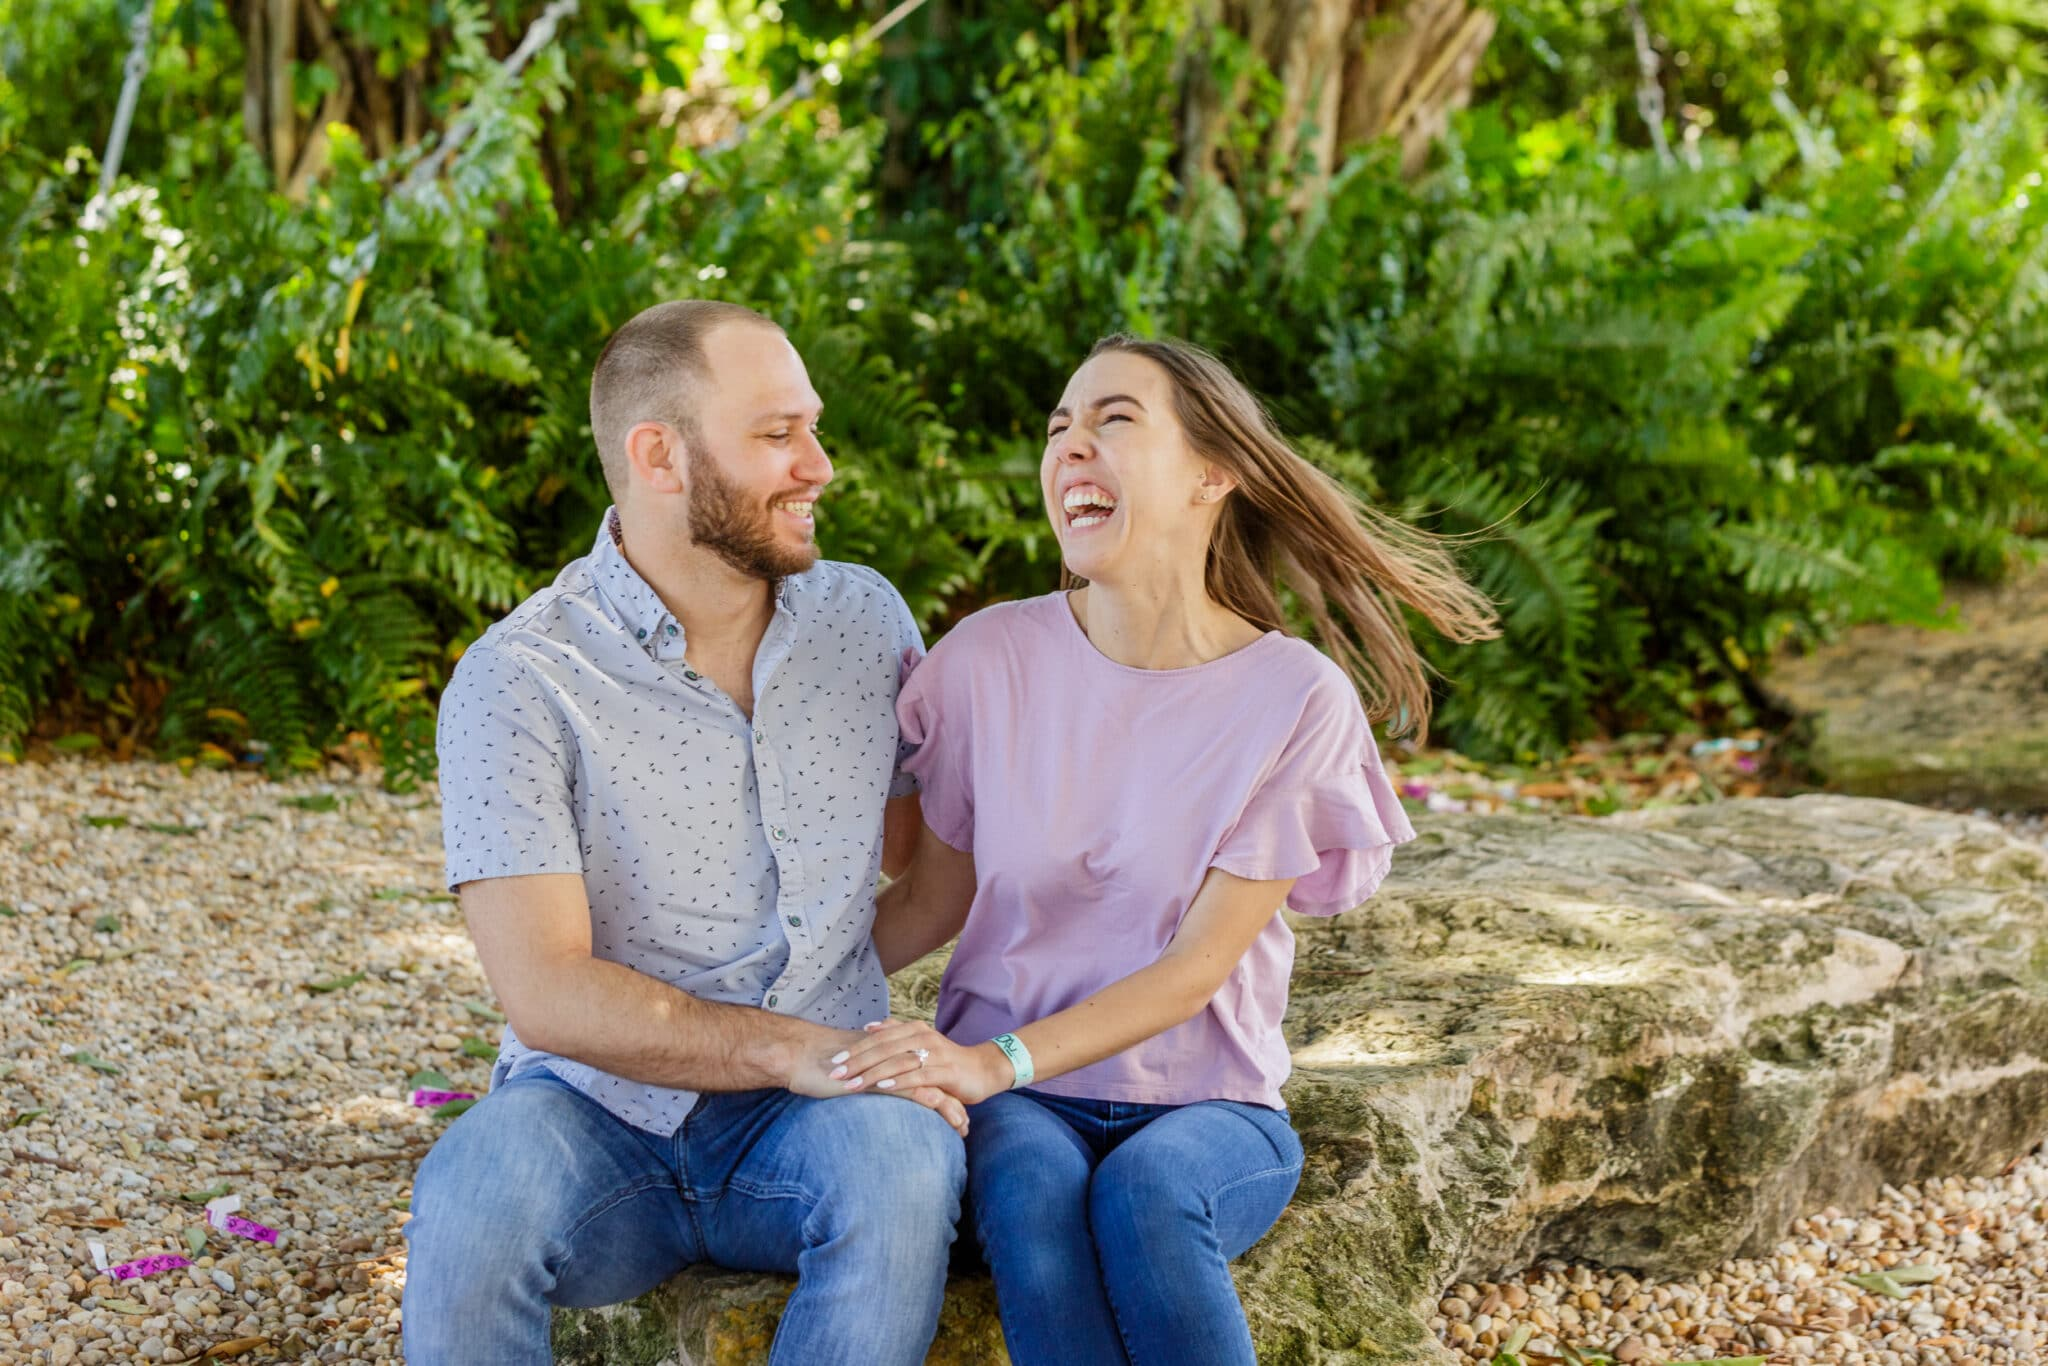 bride and groom to be sitting on a rock with bushes in the background holding hands and laughing